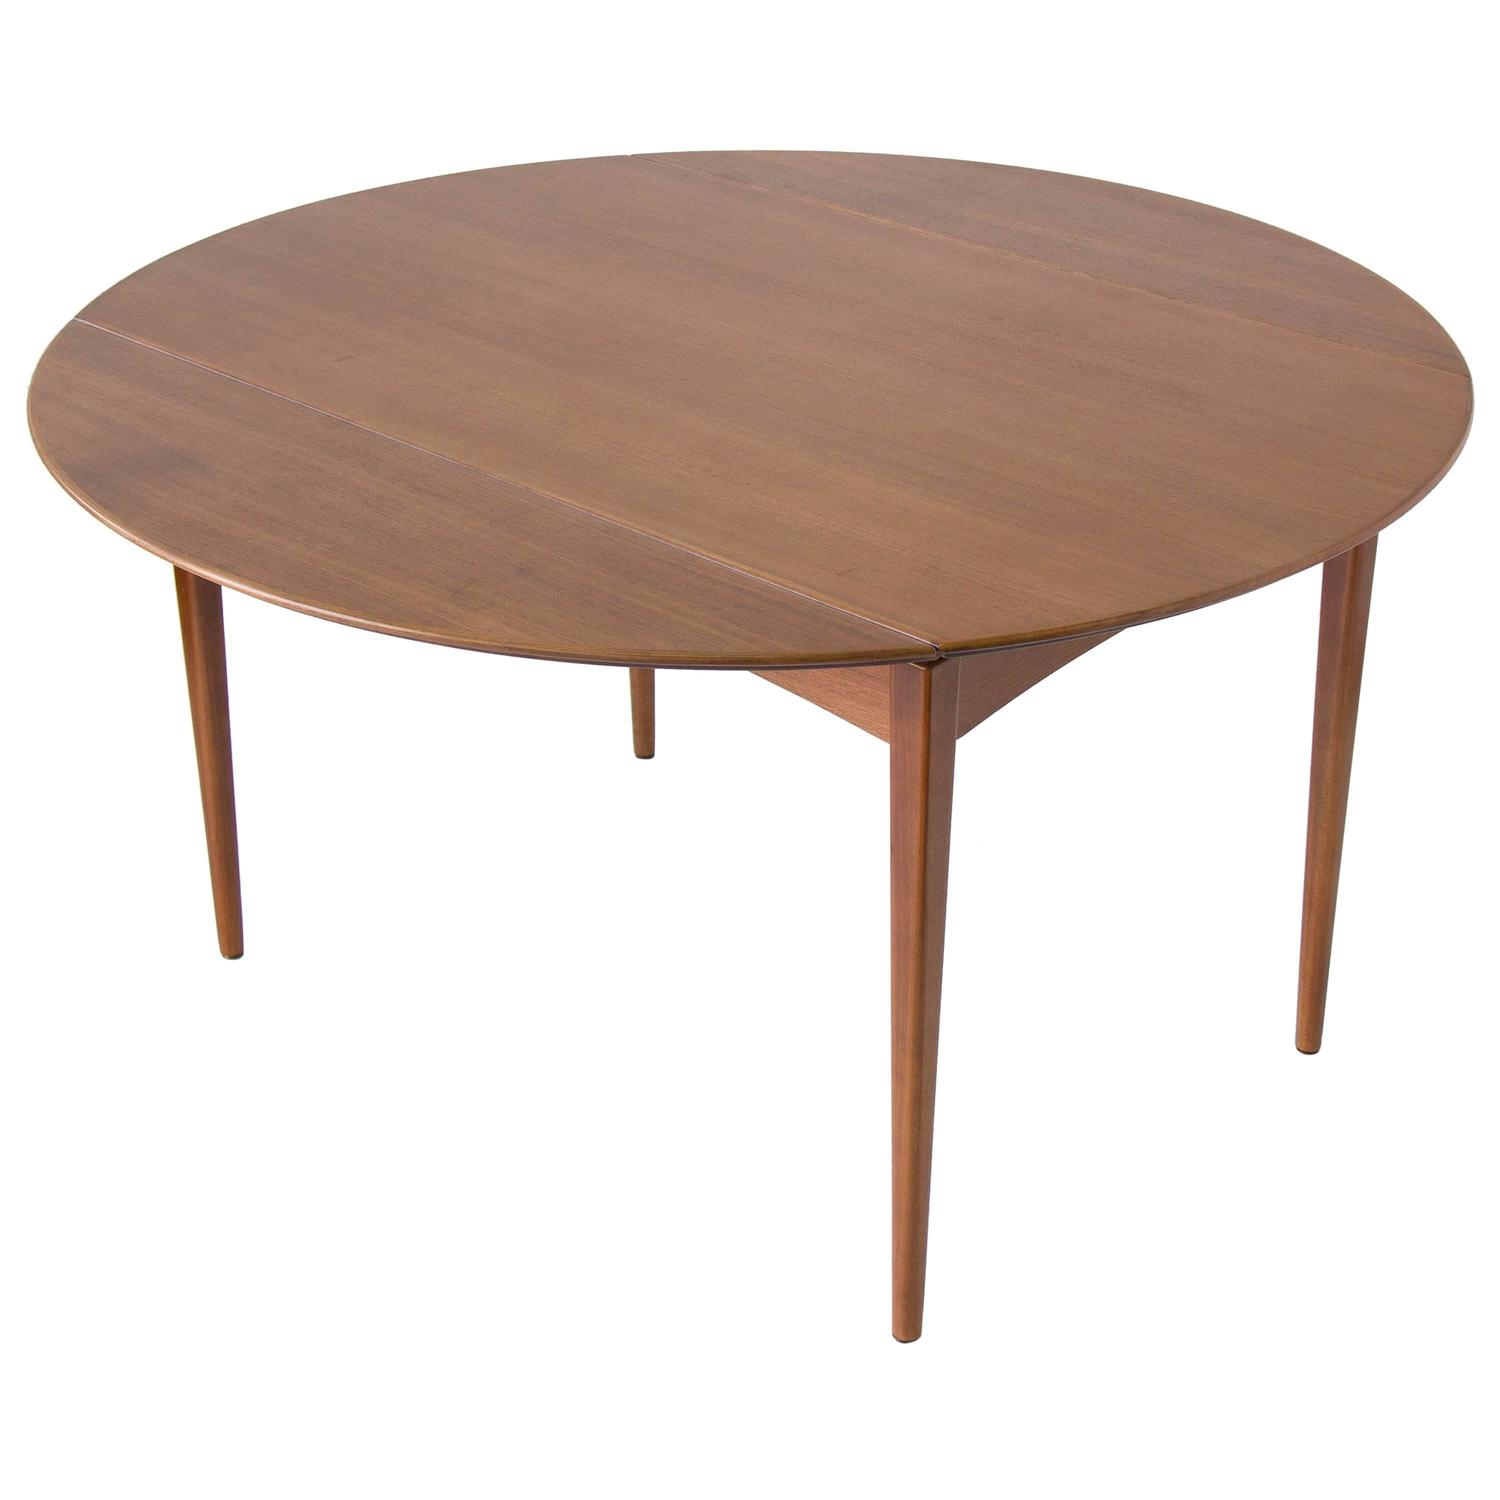 Drop leaf dux dining table at 1stdibs for Dining room tables with leaves